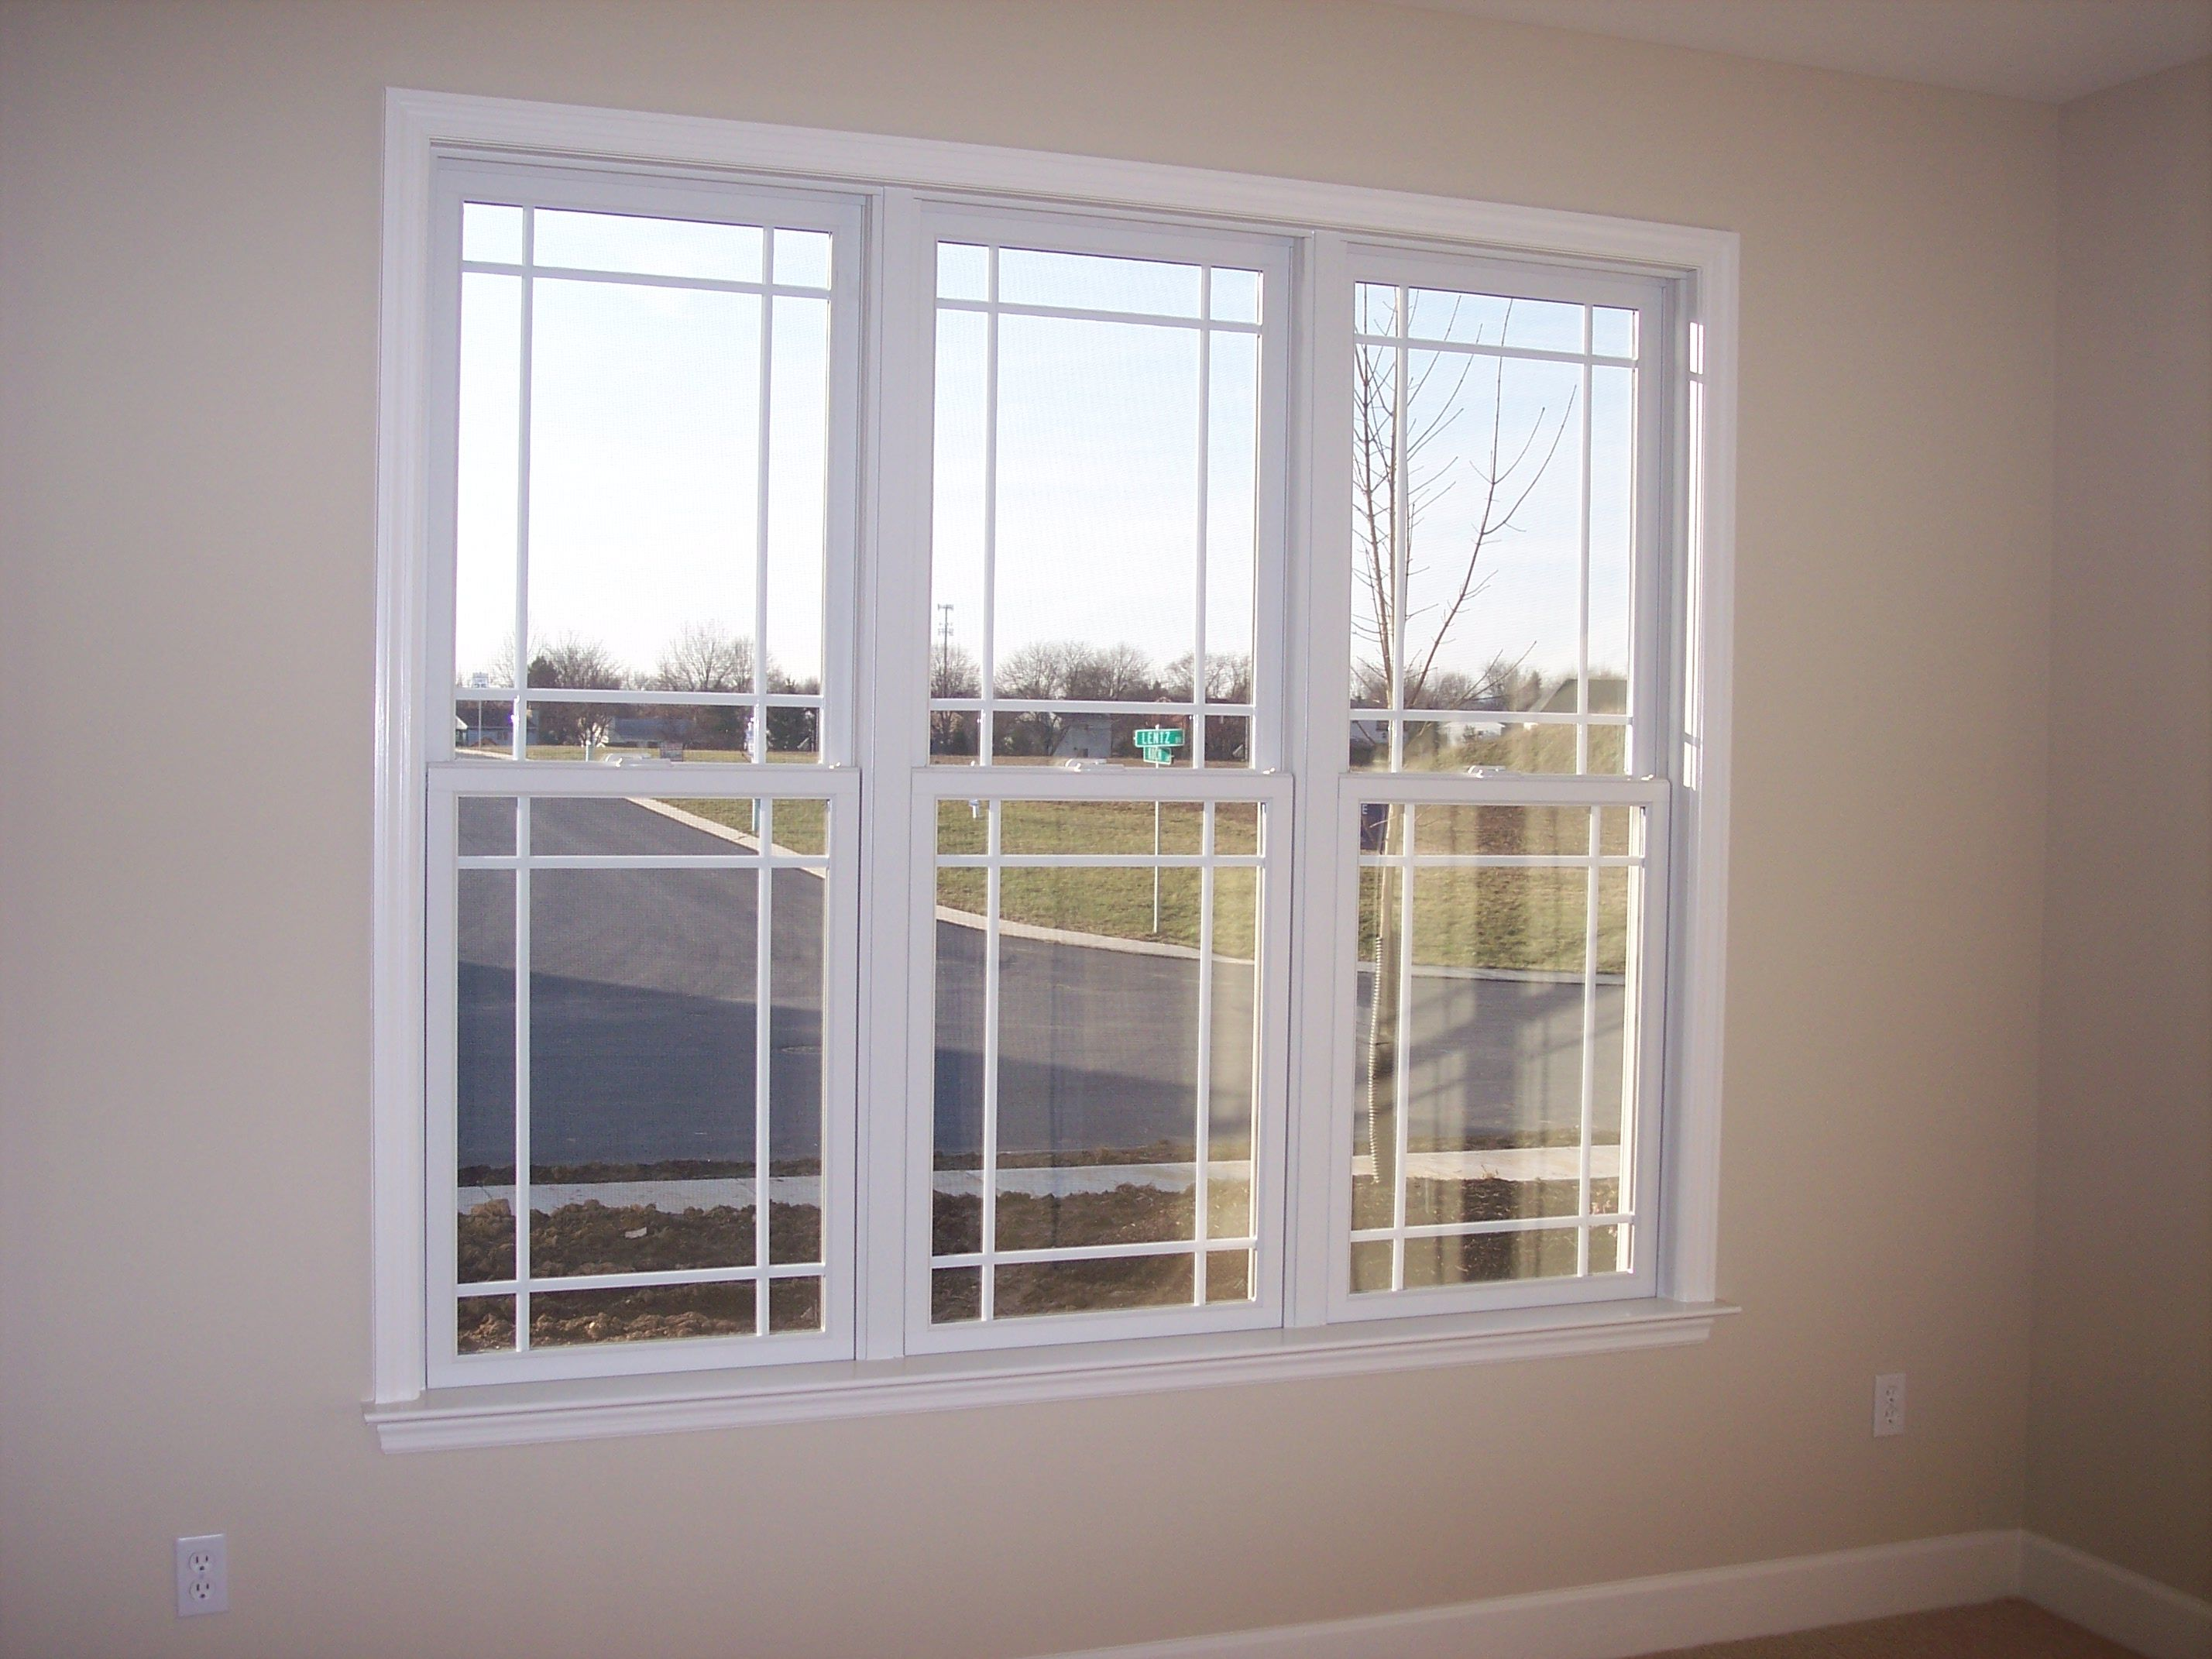 Ordinaire Window Designs For Homes Window Pictures